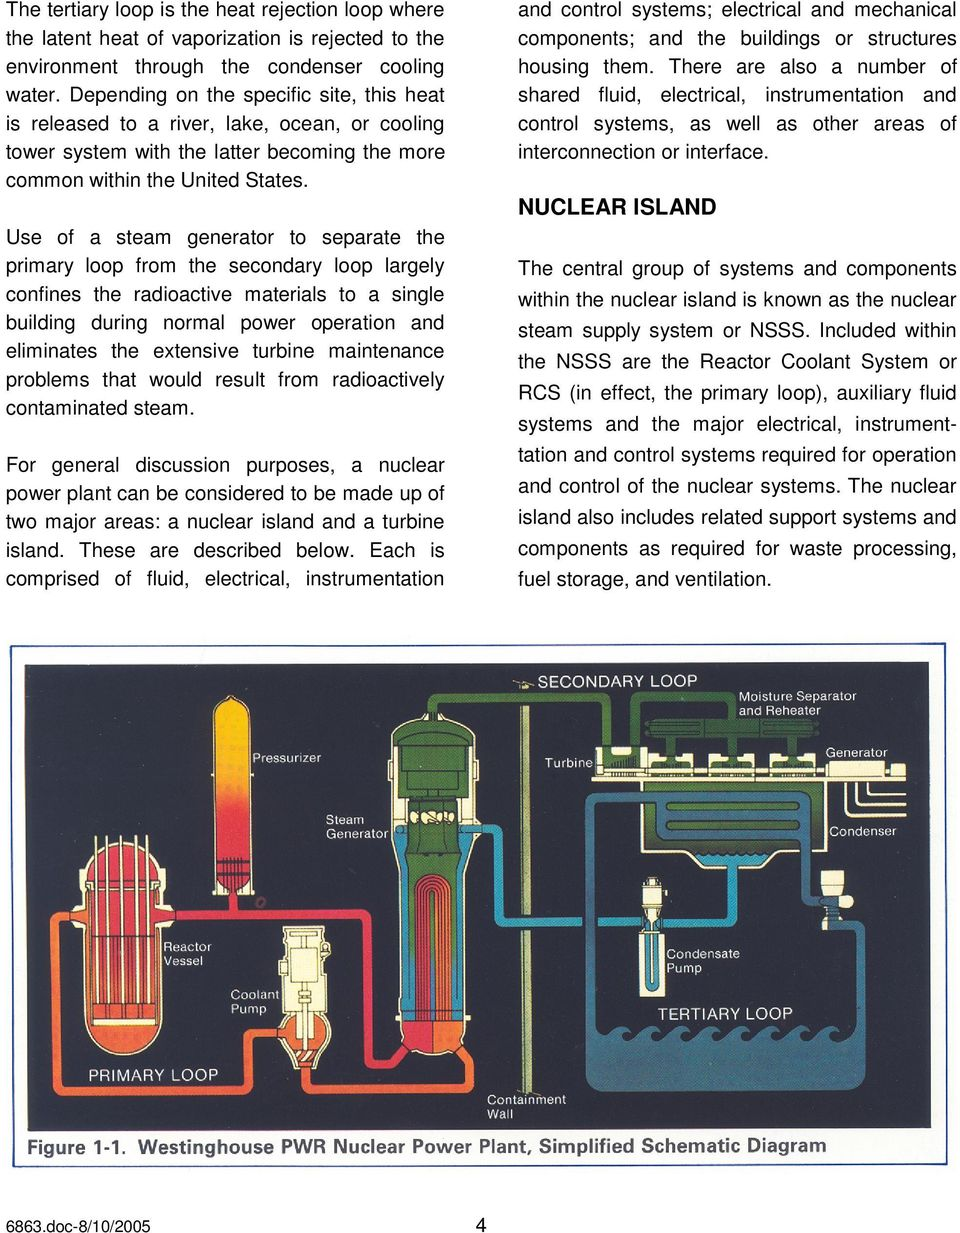 The Westinghouse Pressurized Water Reactor Nuclear Power Plant Pdf With Diagram Tertiary Loop Is Heat Rejection Where Latent Of Vaporization Rejected 21